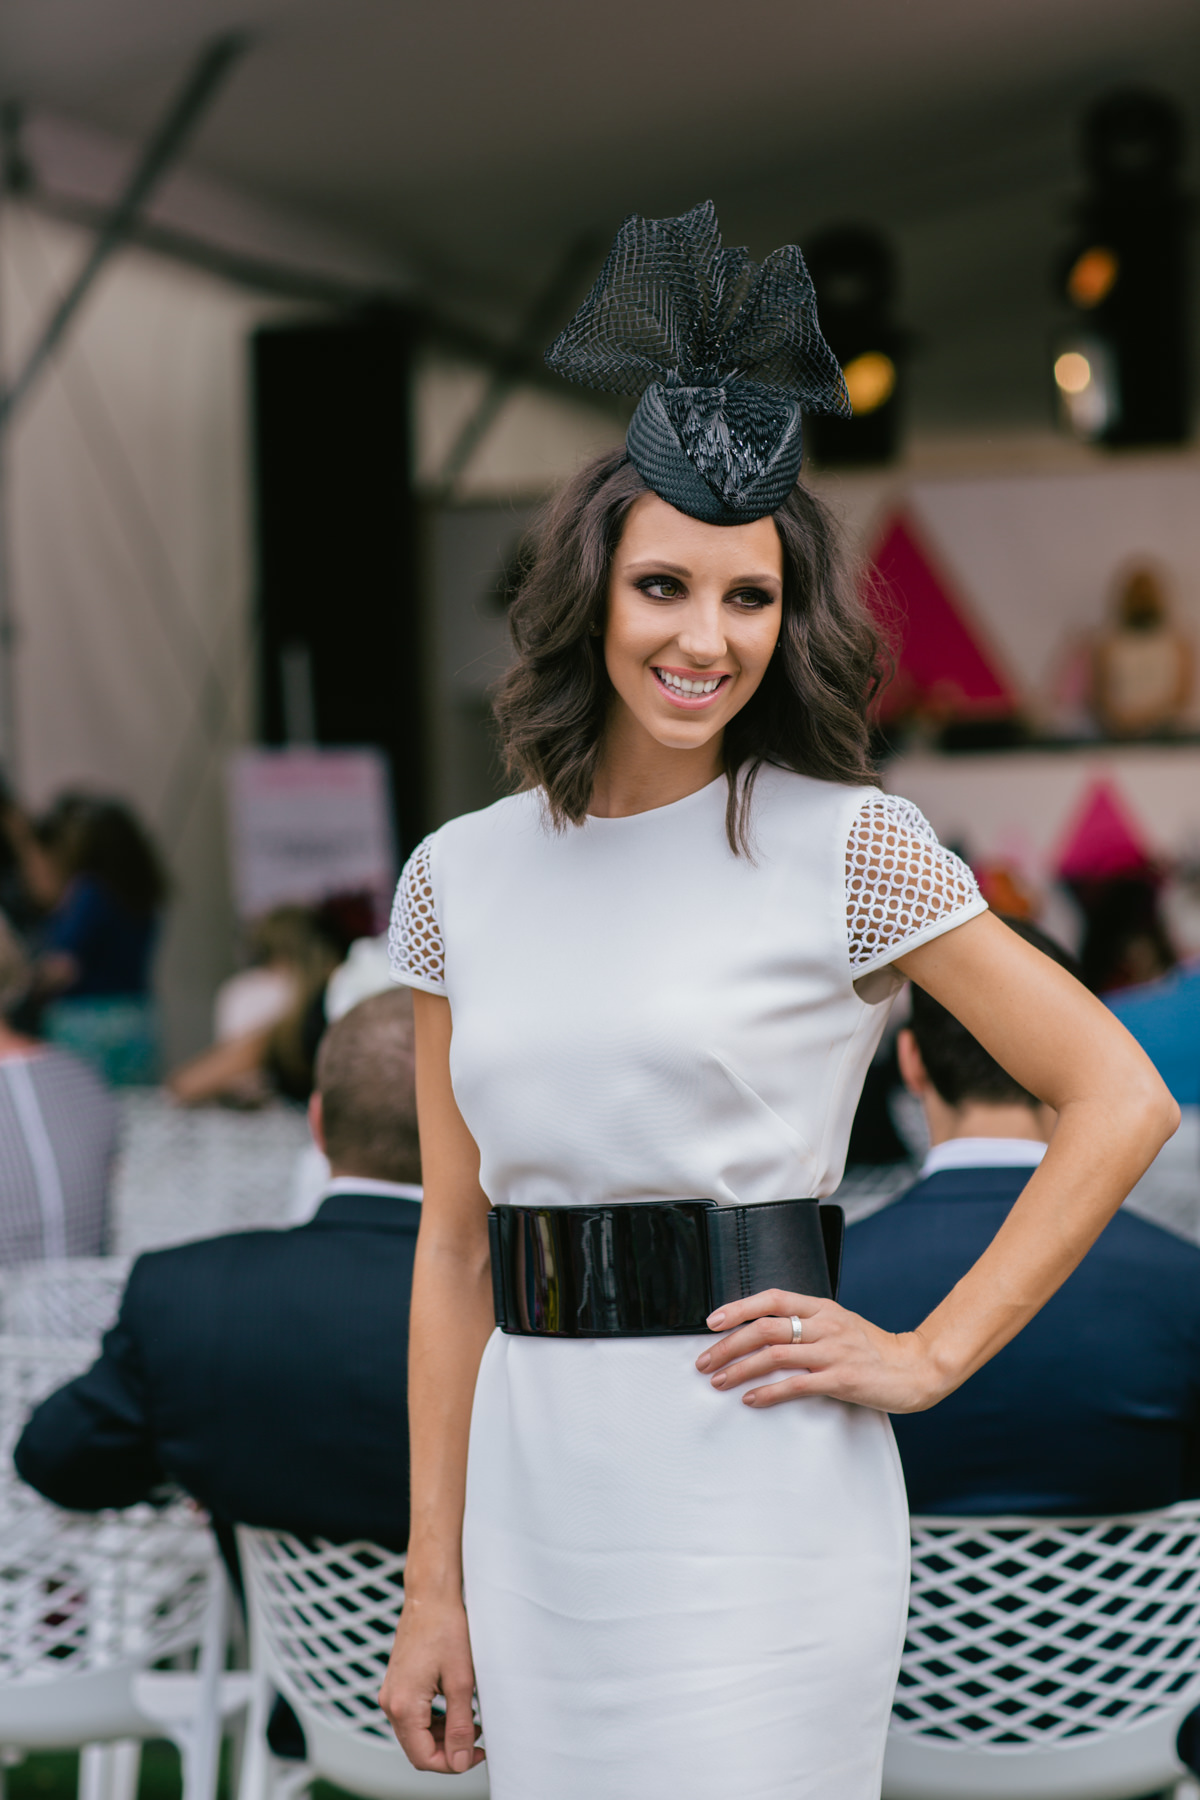 racing fashion 2015 - the trends from caulfield